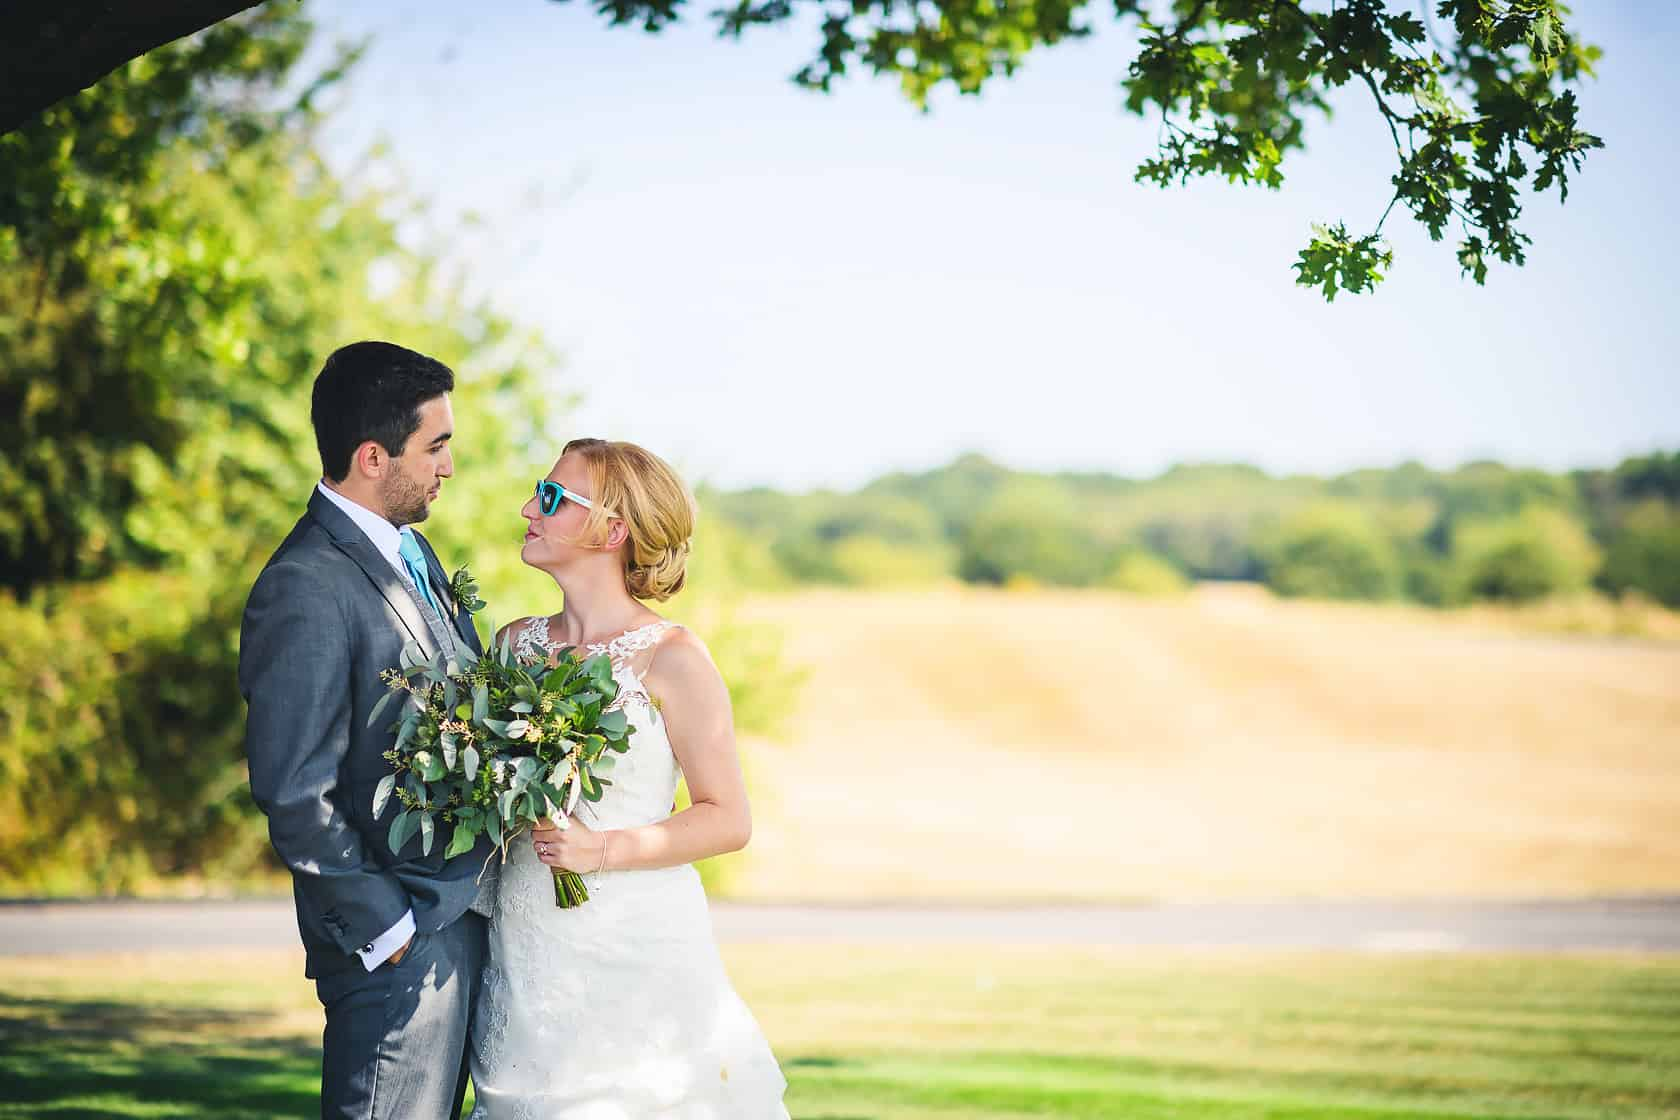 Best_Wedding_Photography_2018_Wedding-Photographer-Essex-and-London_036